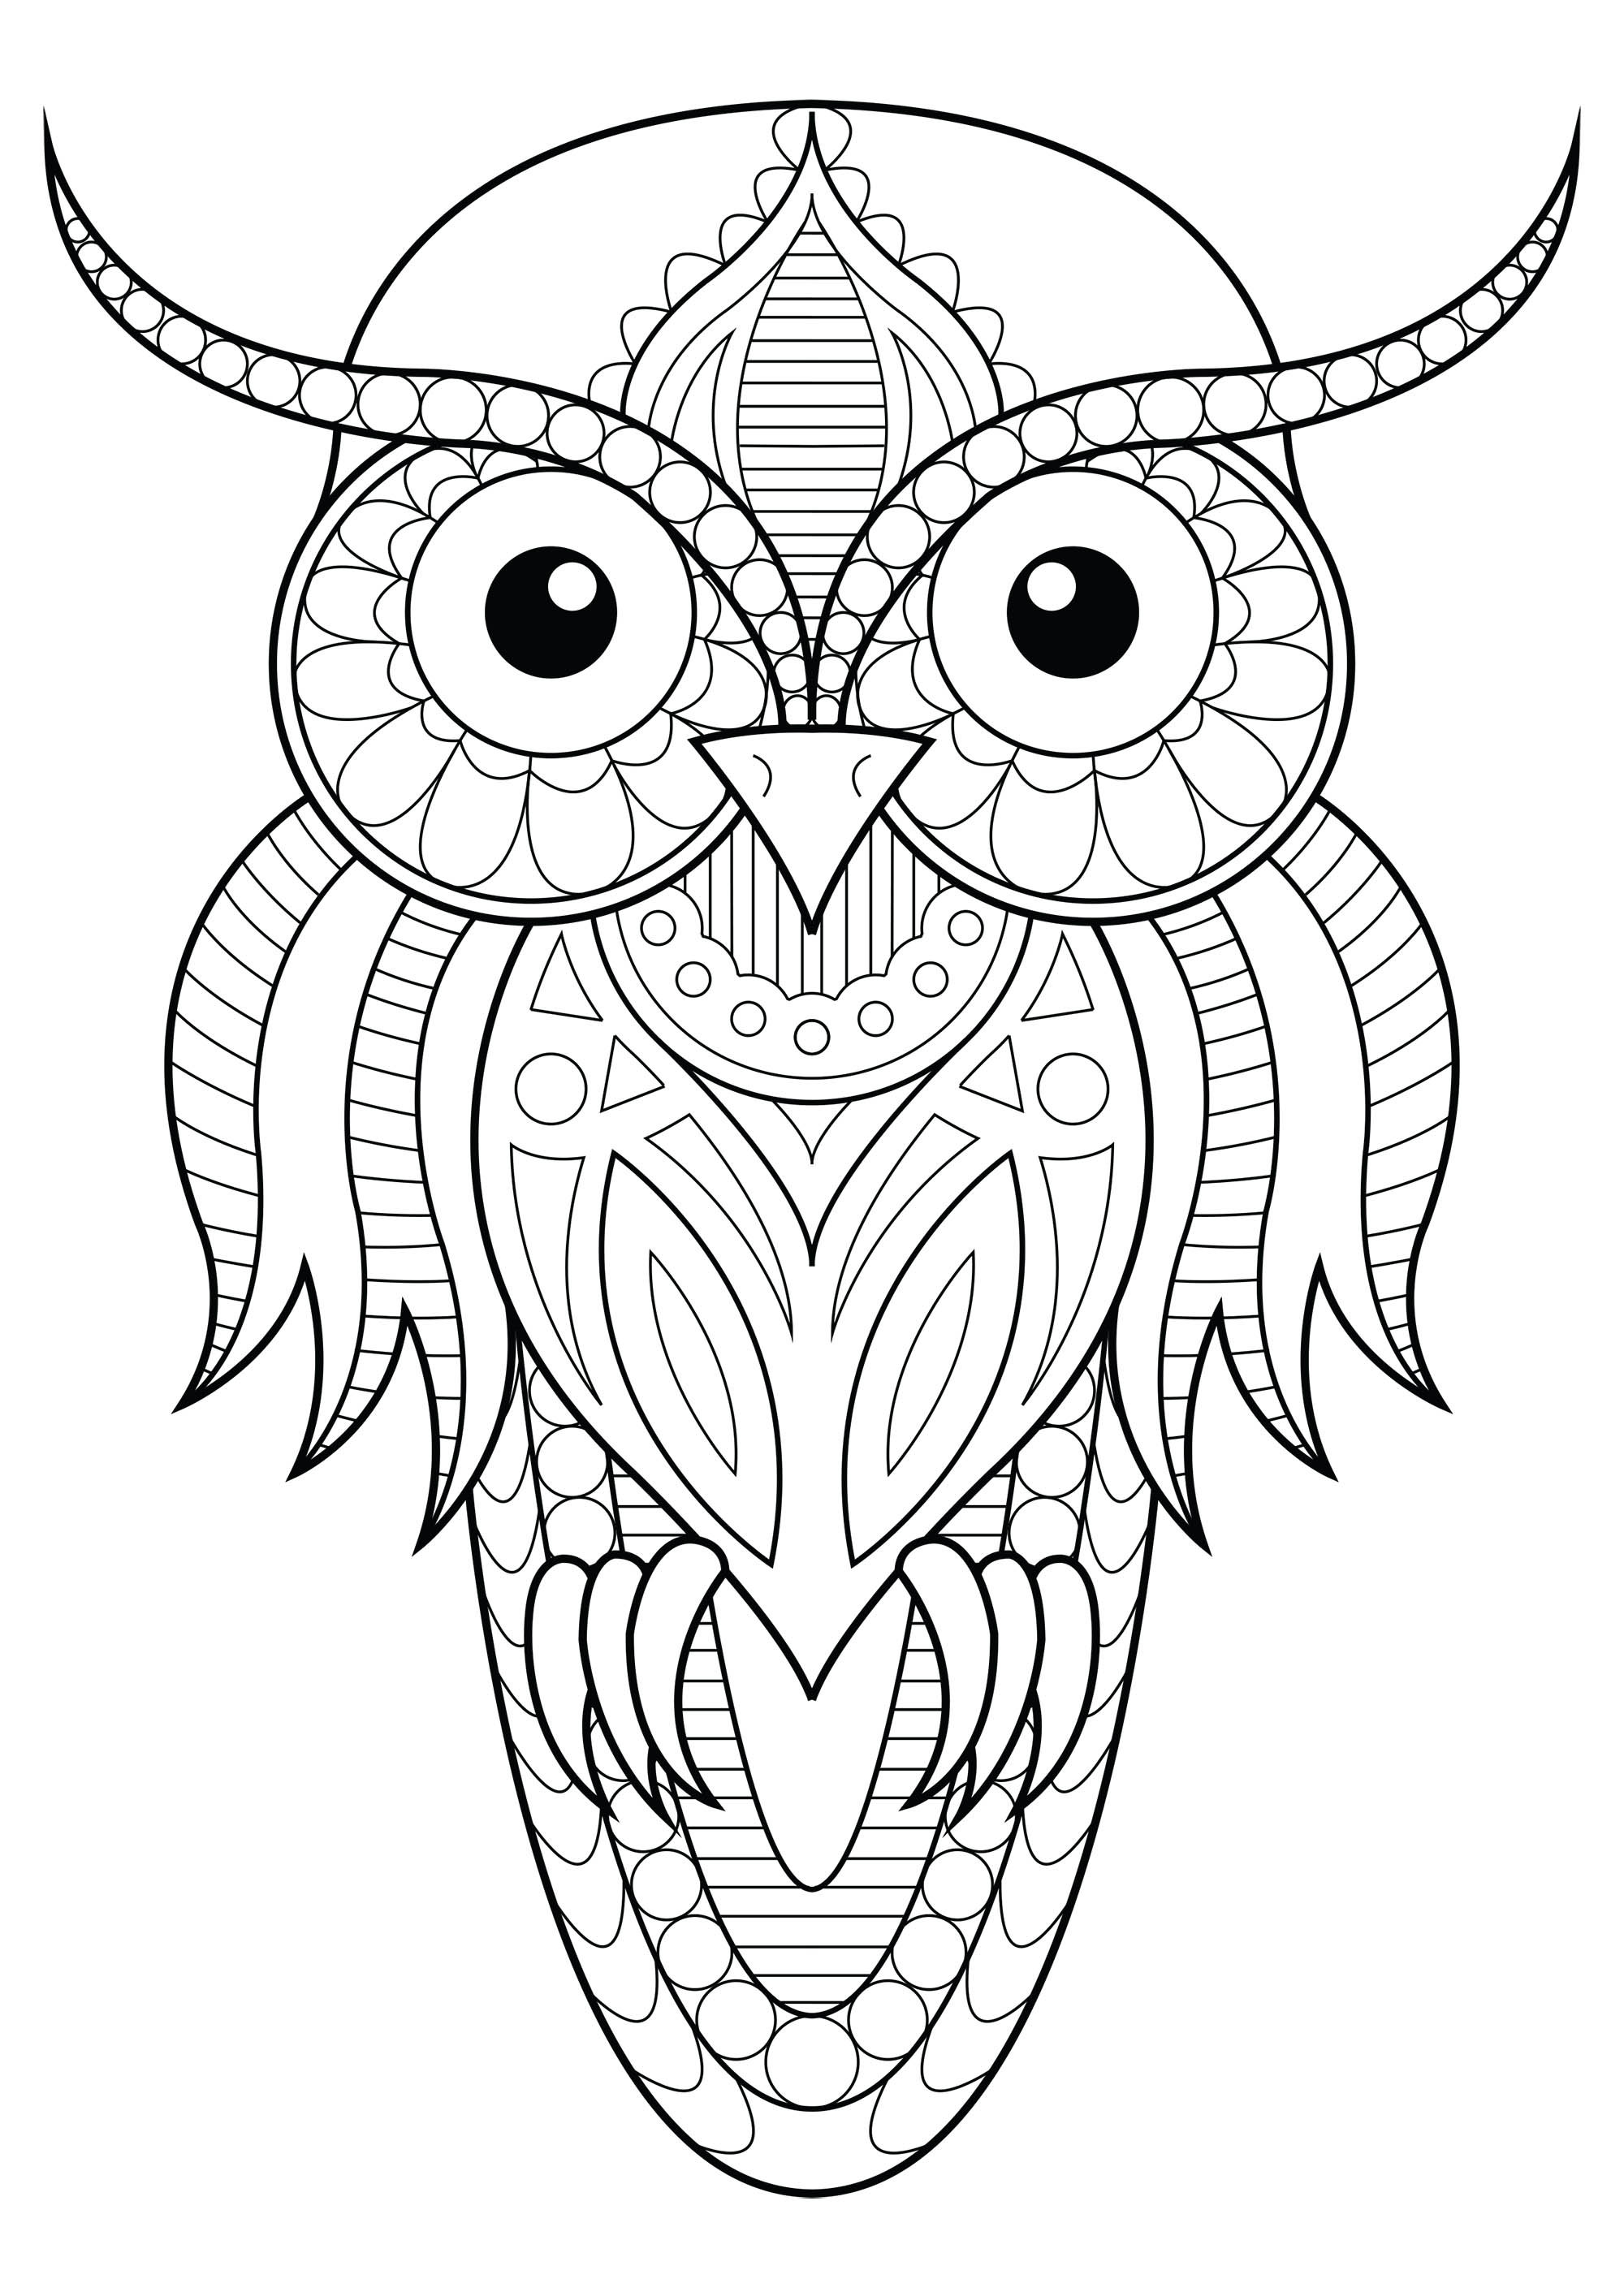 Color this simple Owl with beautiful patterns